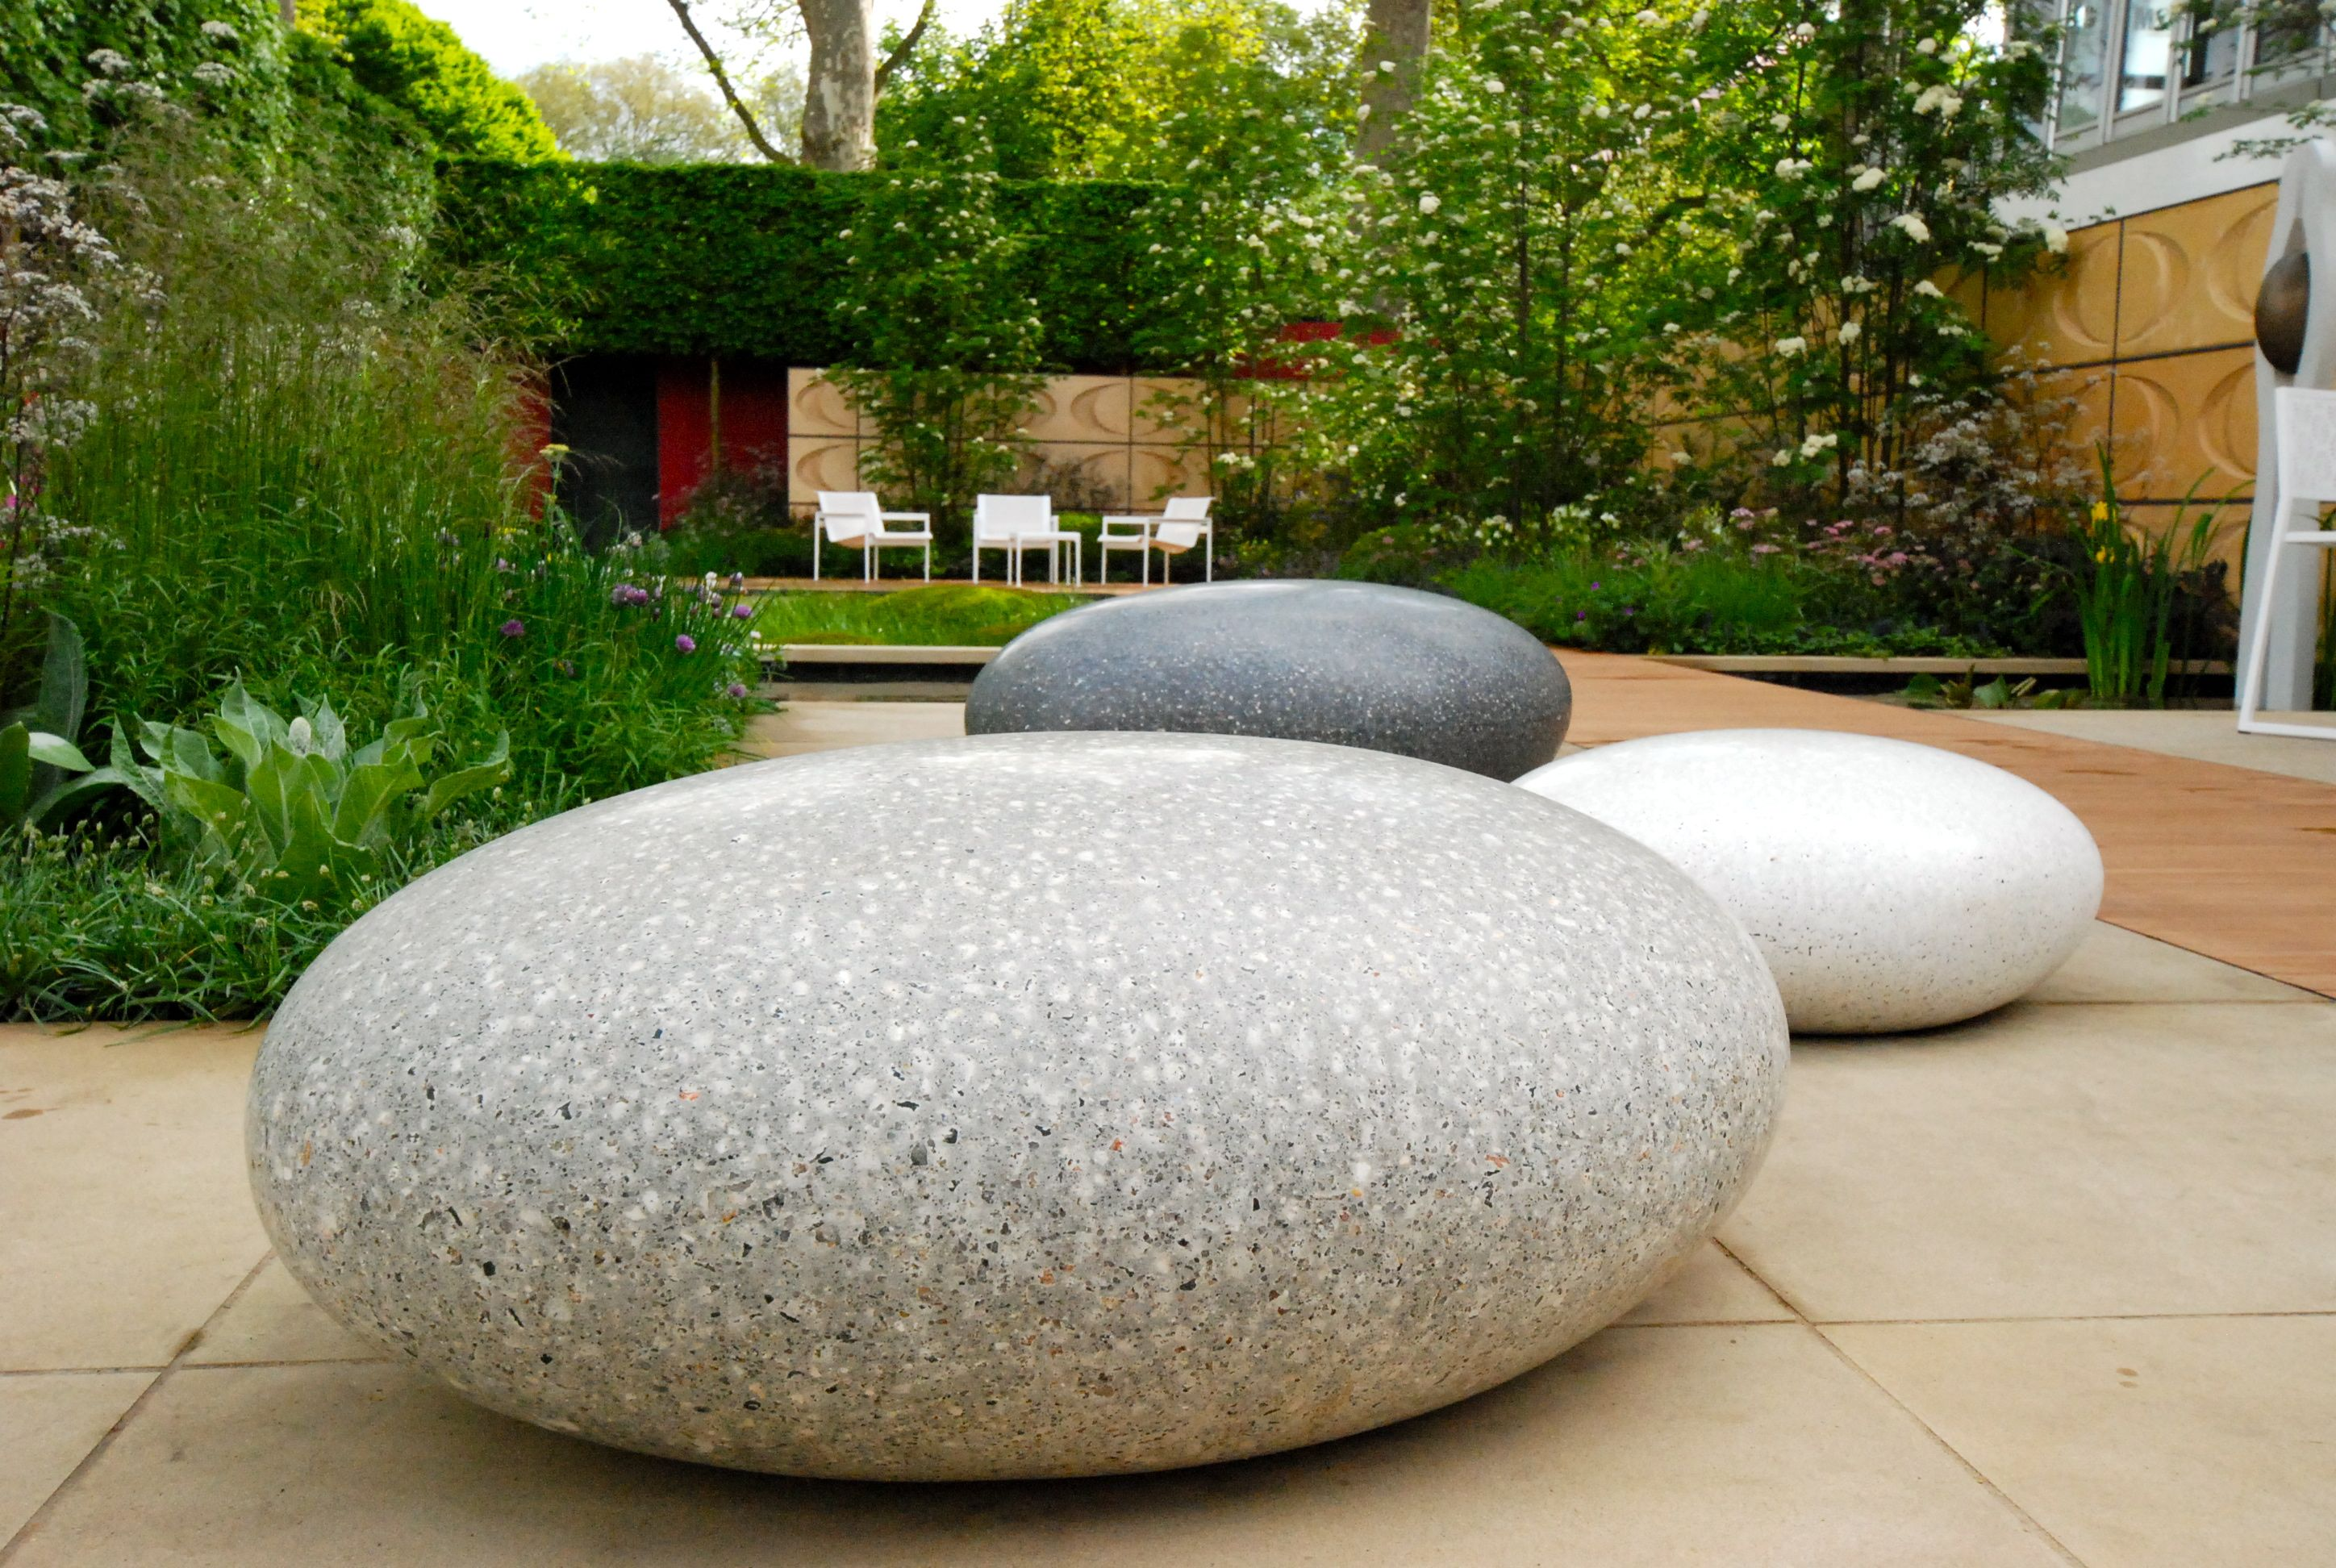 Pebble Tavolino ~ Ulf nordfjell giant pebble shapes for seating click image to